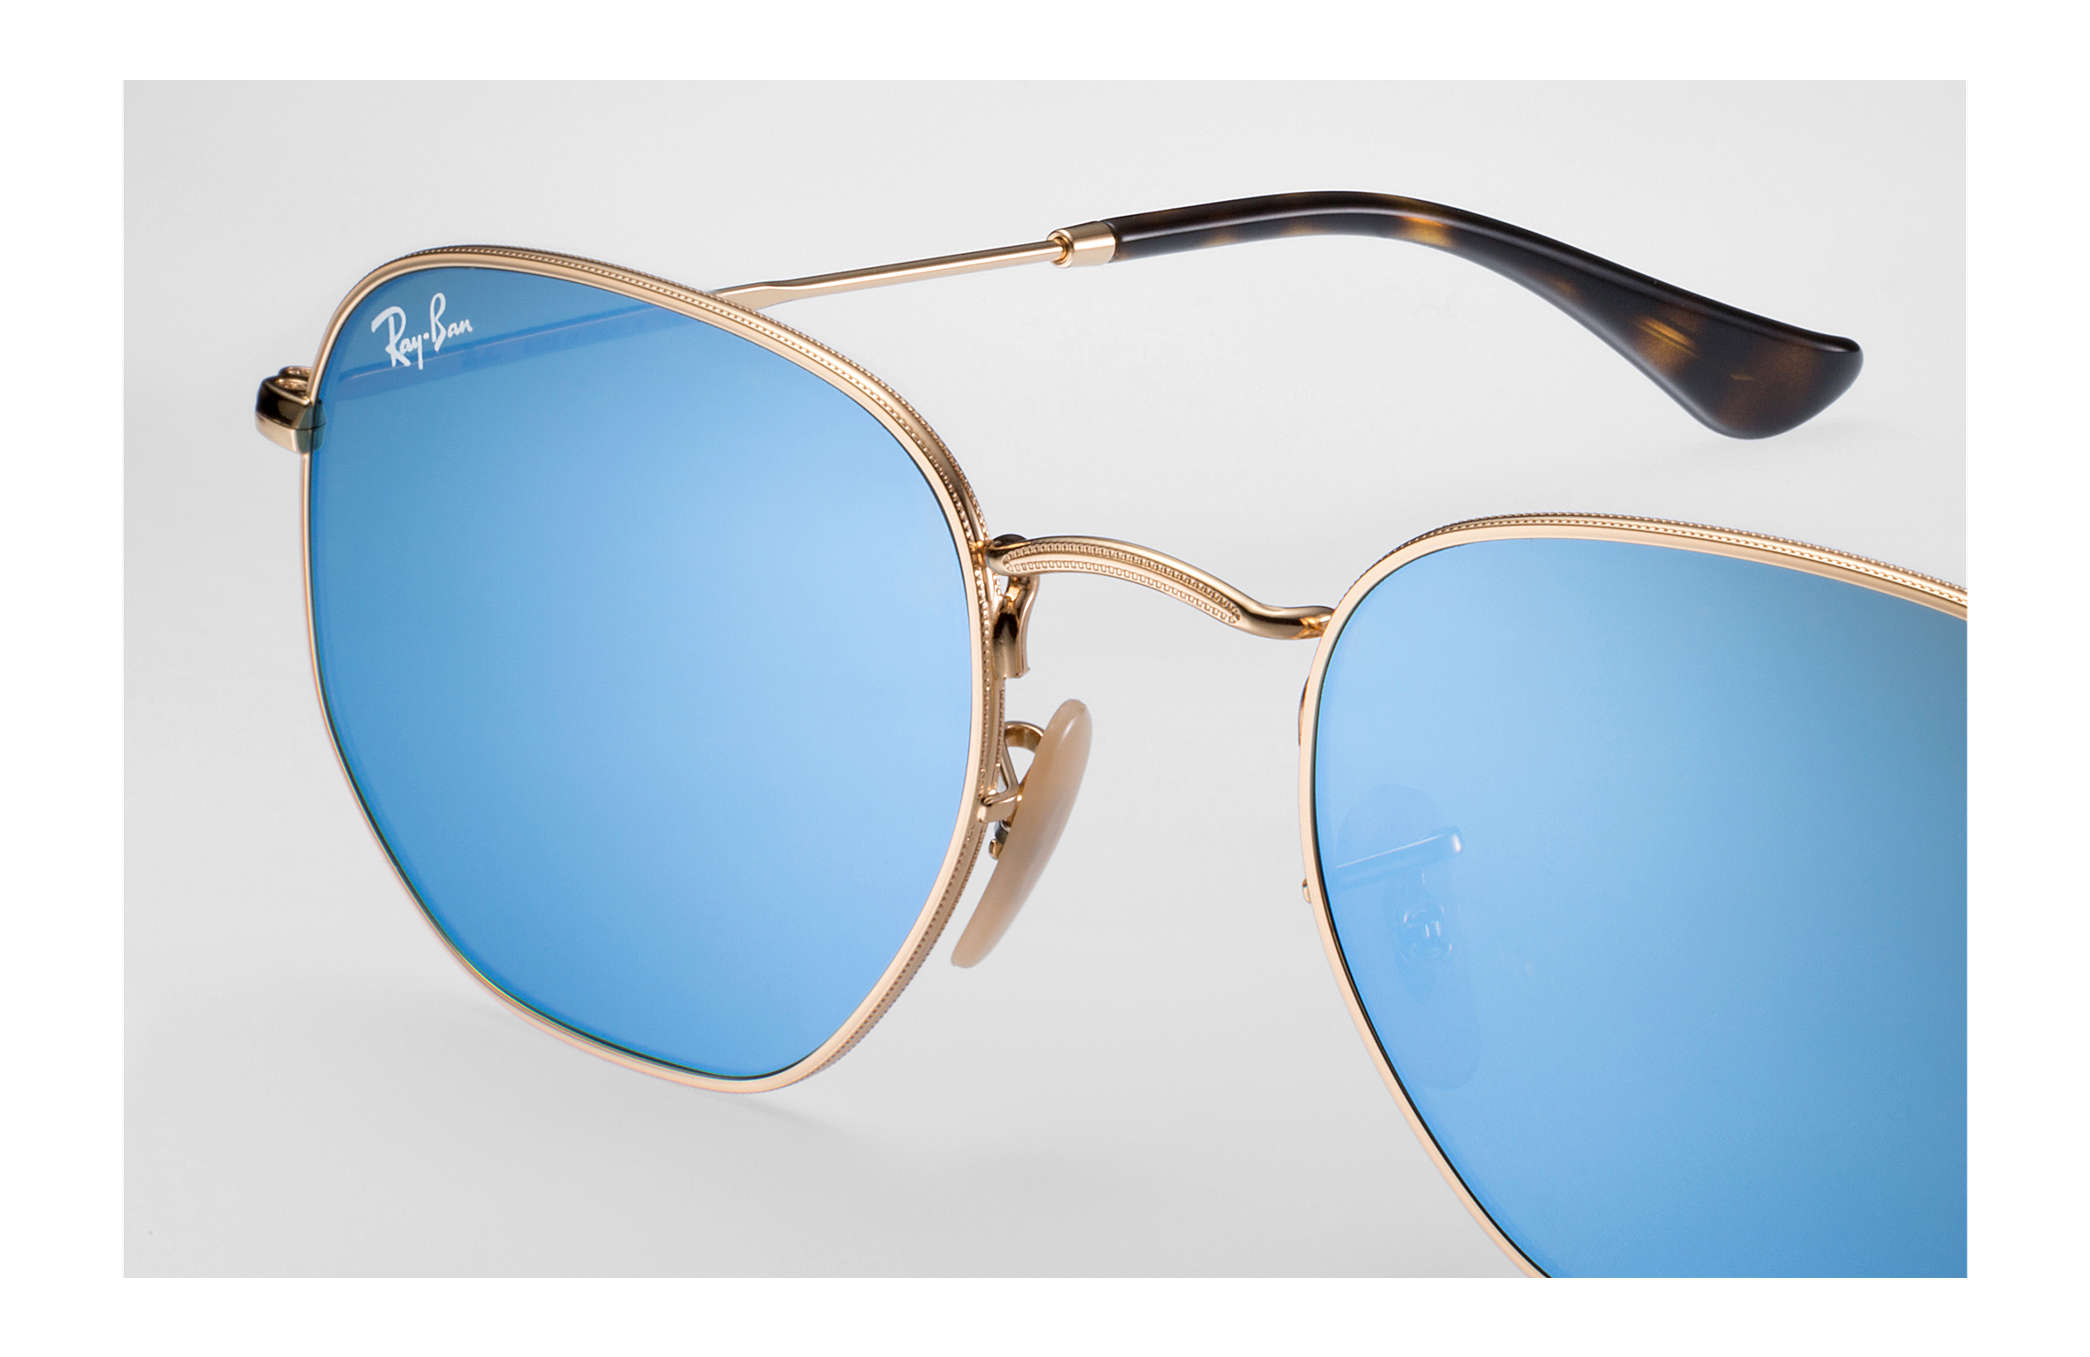 d60b2838332ff Ray-Ban Hexagonal Flat Lenses RB3548N Ouro - Metal - Lentes ...